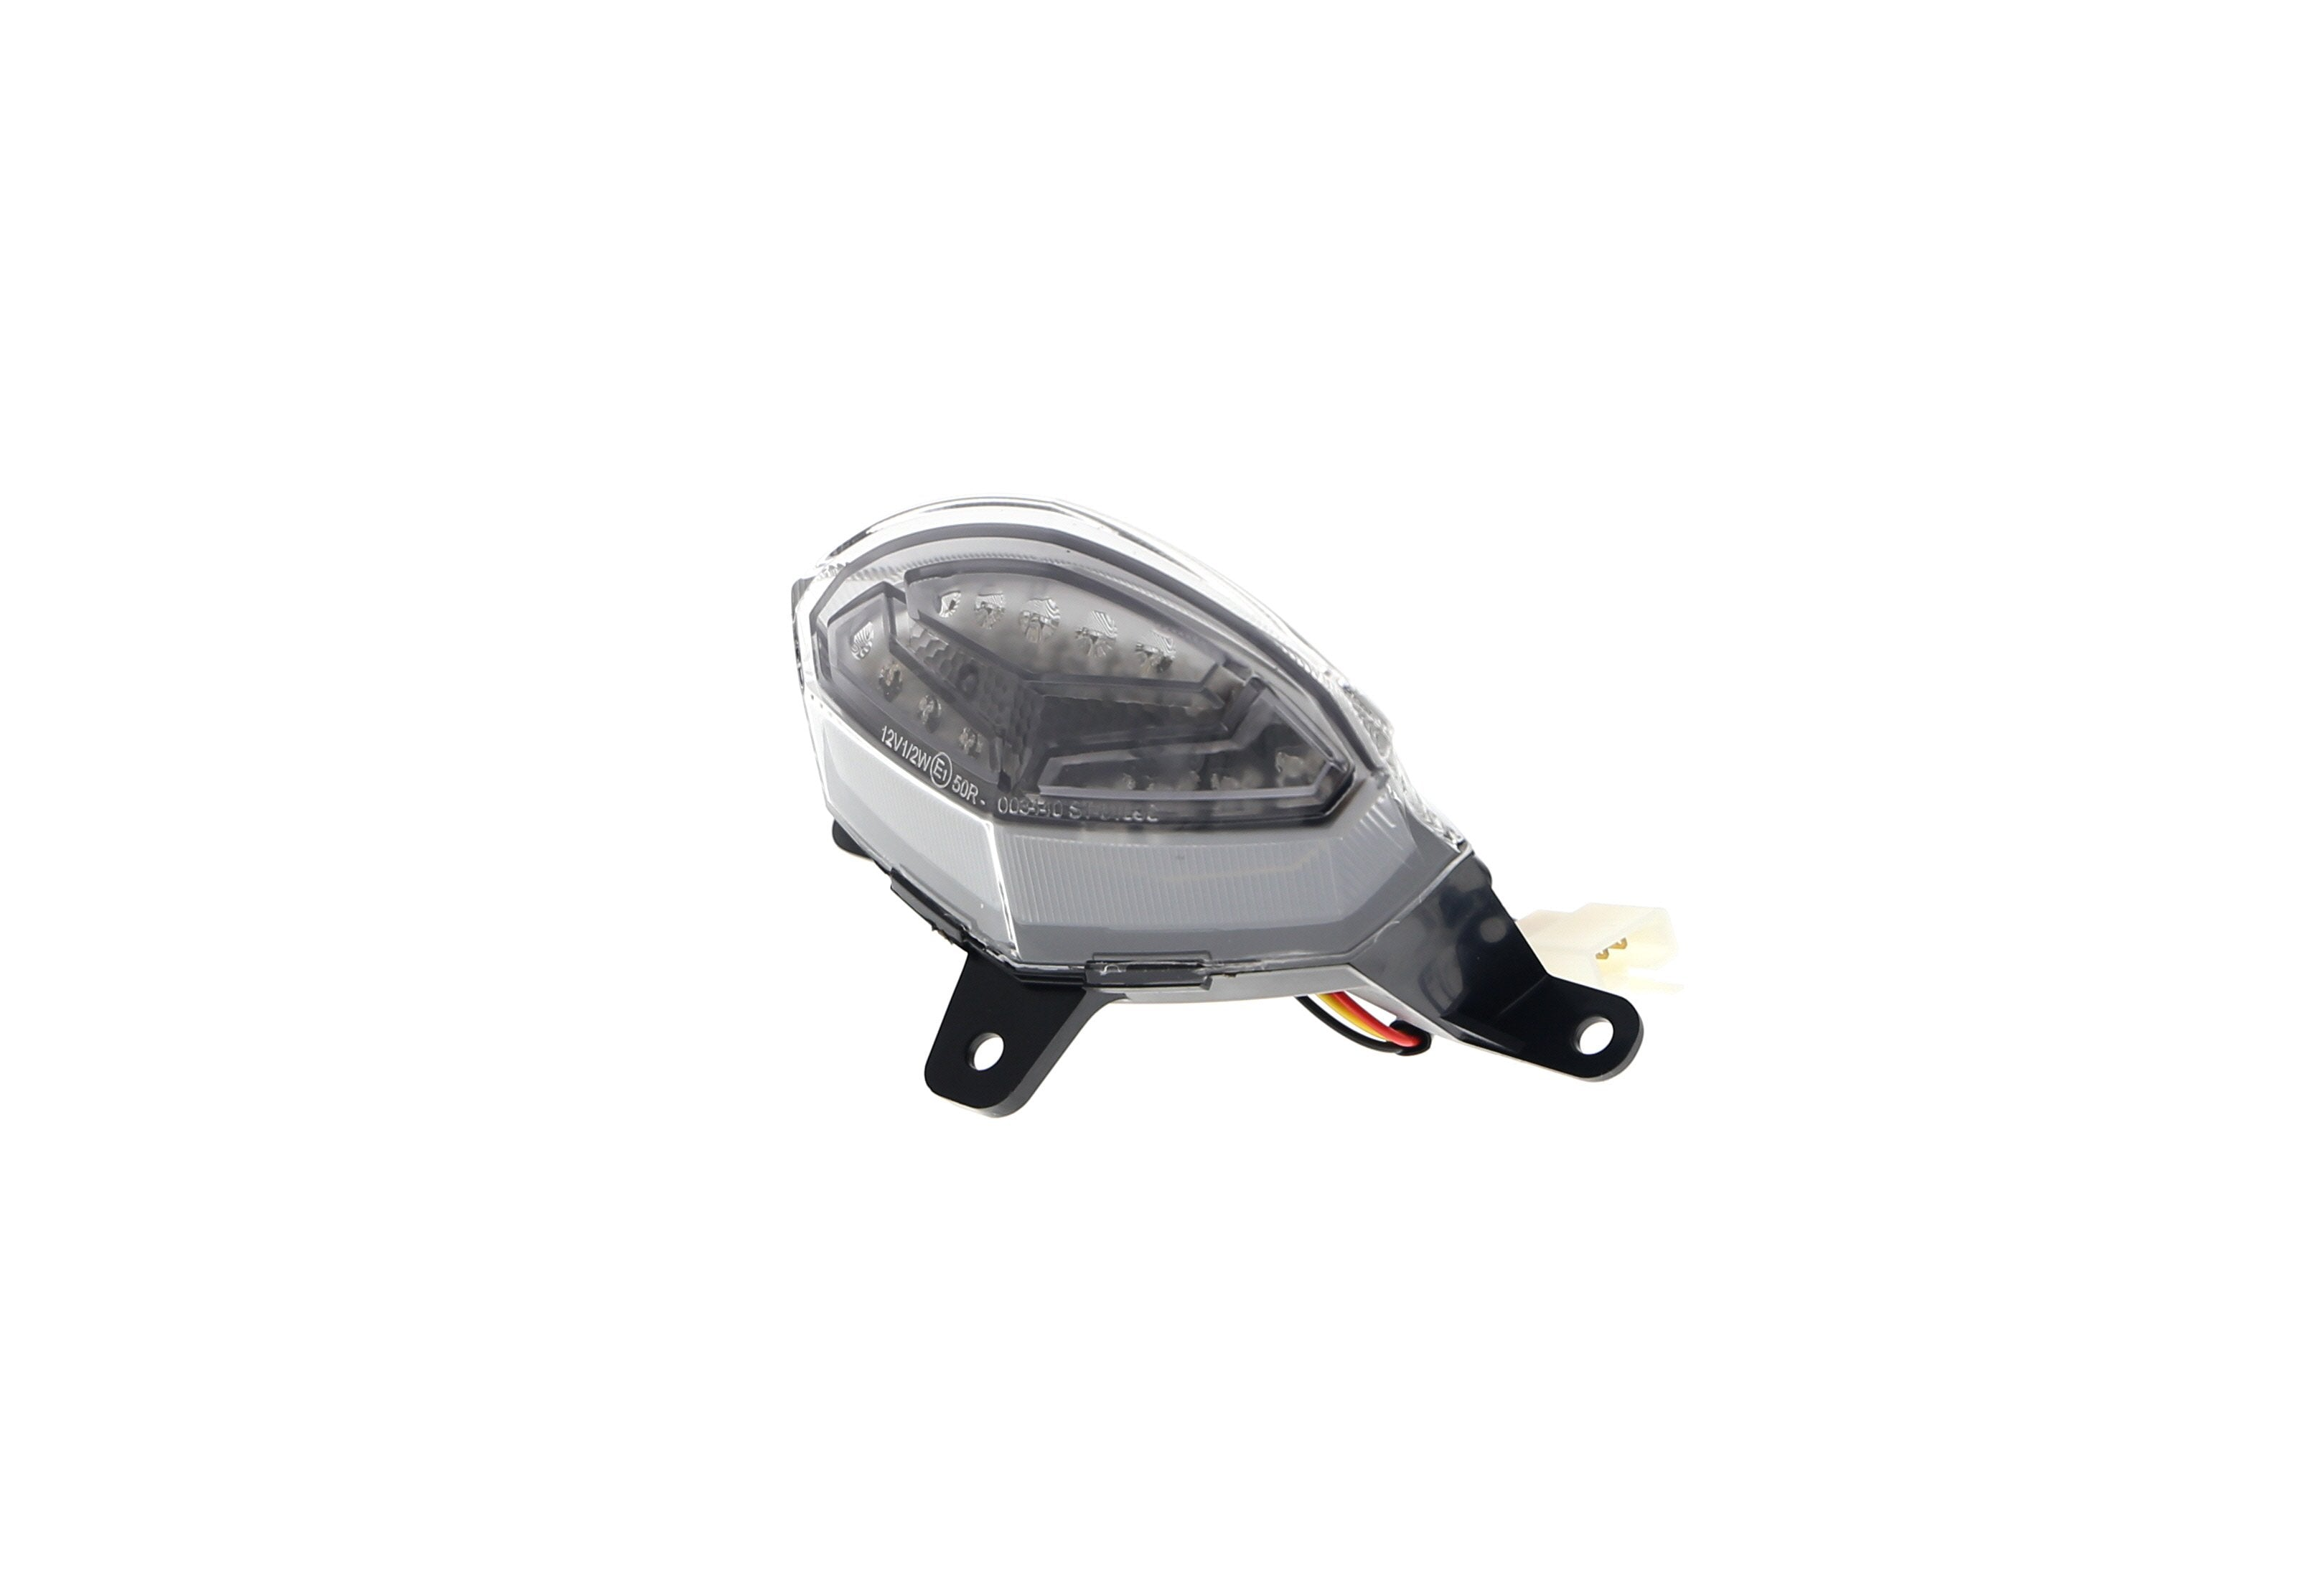 EP KTM 390 Duke Clear Rear Light 2013 - 2016